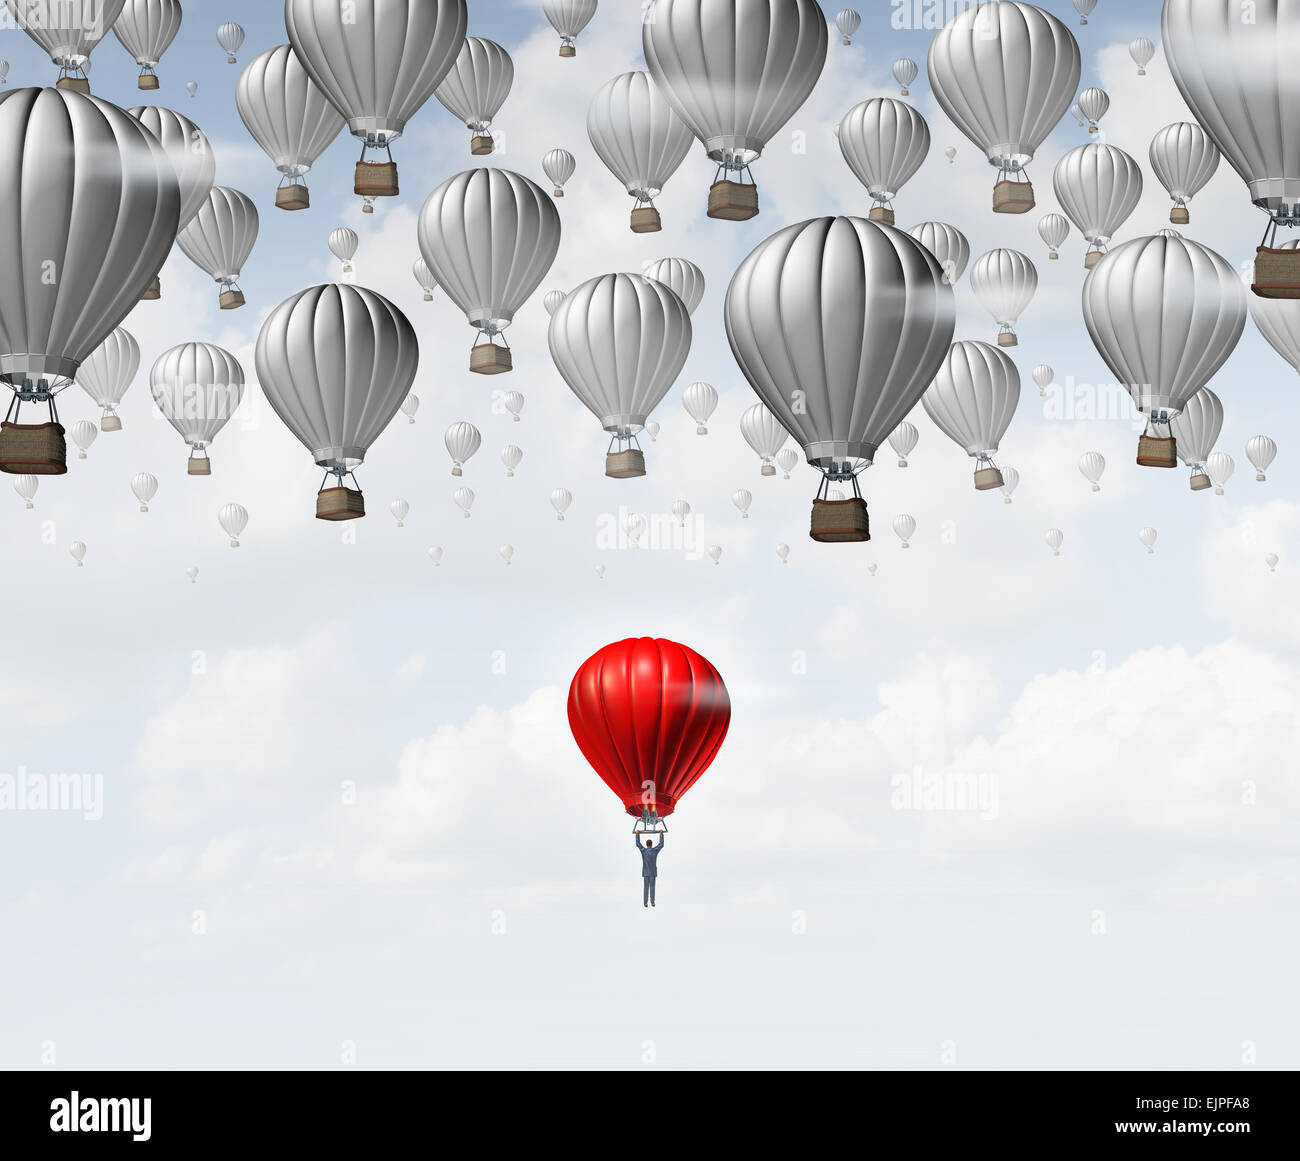 Late career as a businessman in a red hot air balloon trailing and falling behind a group of competitors as a business - Stock Image